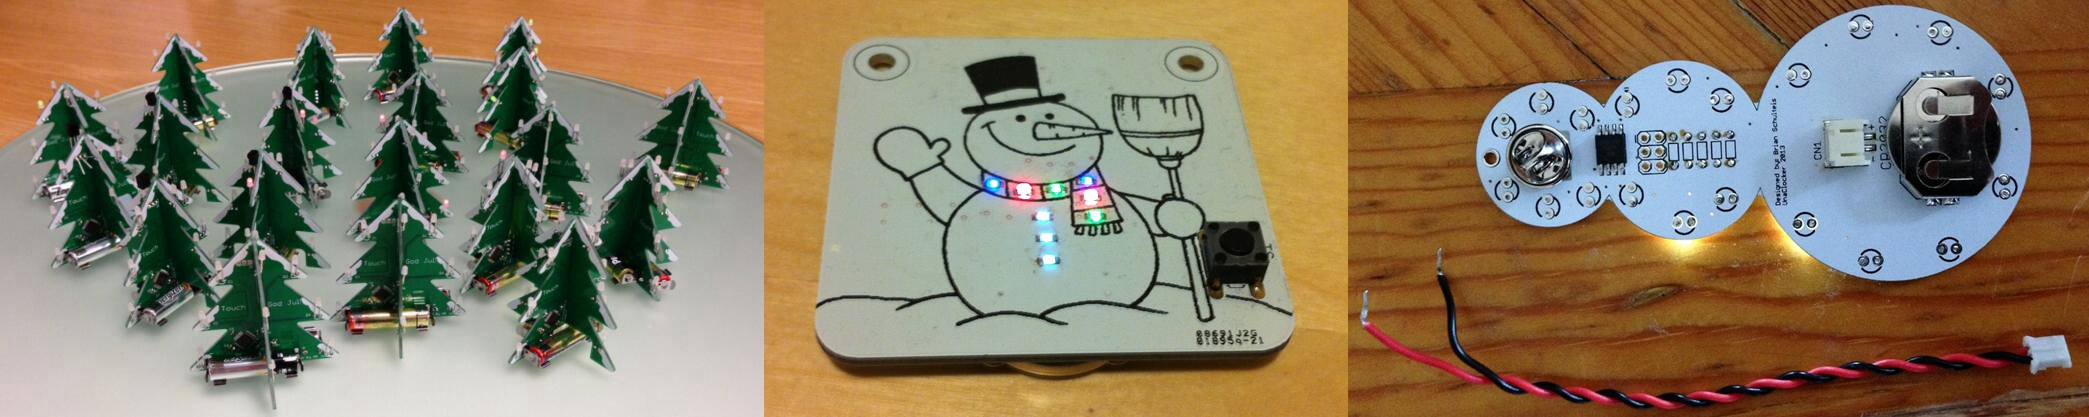 Free PCB Prototyping for Christmas Related Design( Once for Everyone)